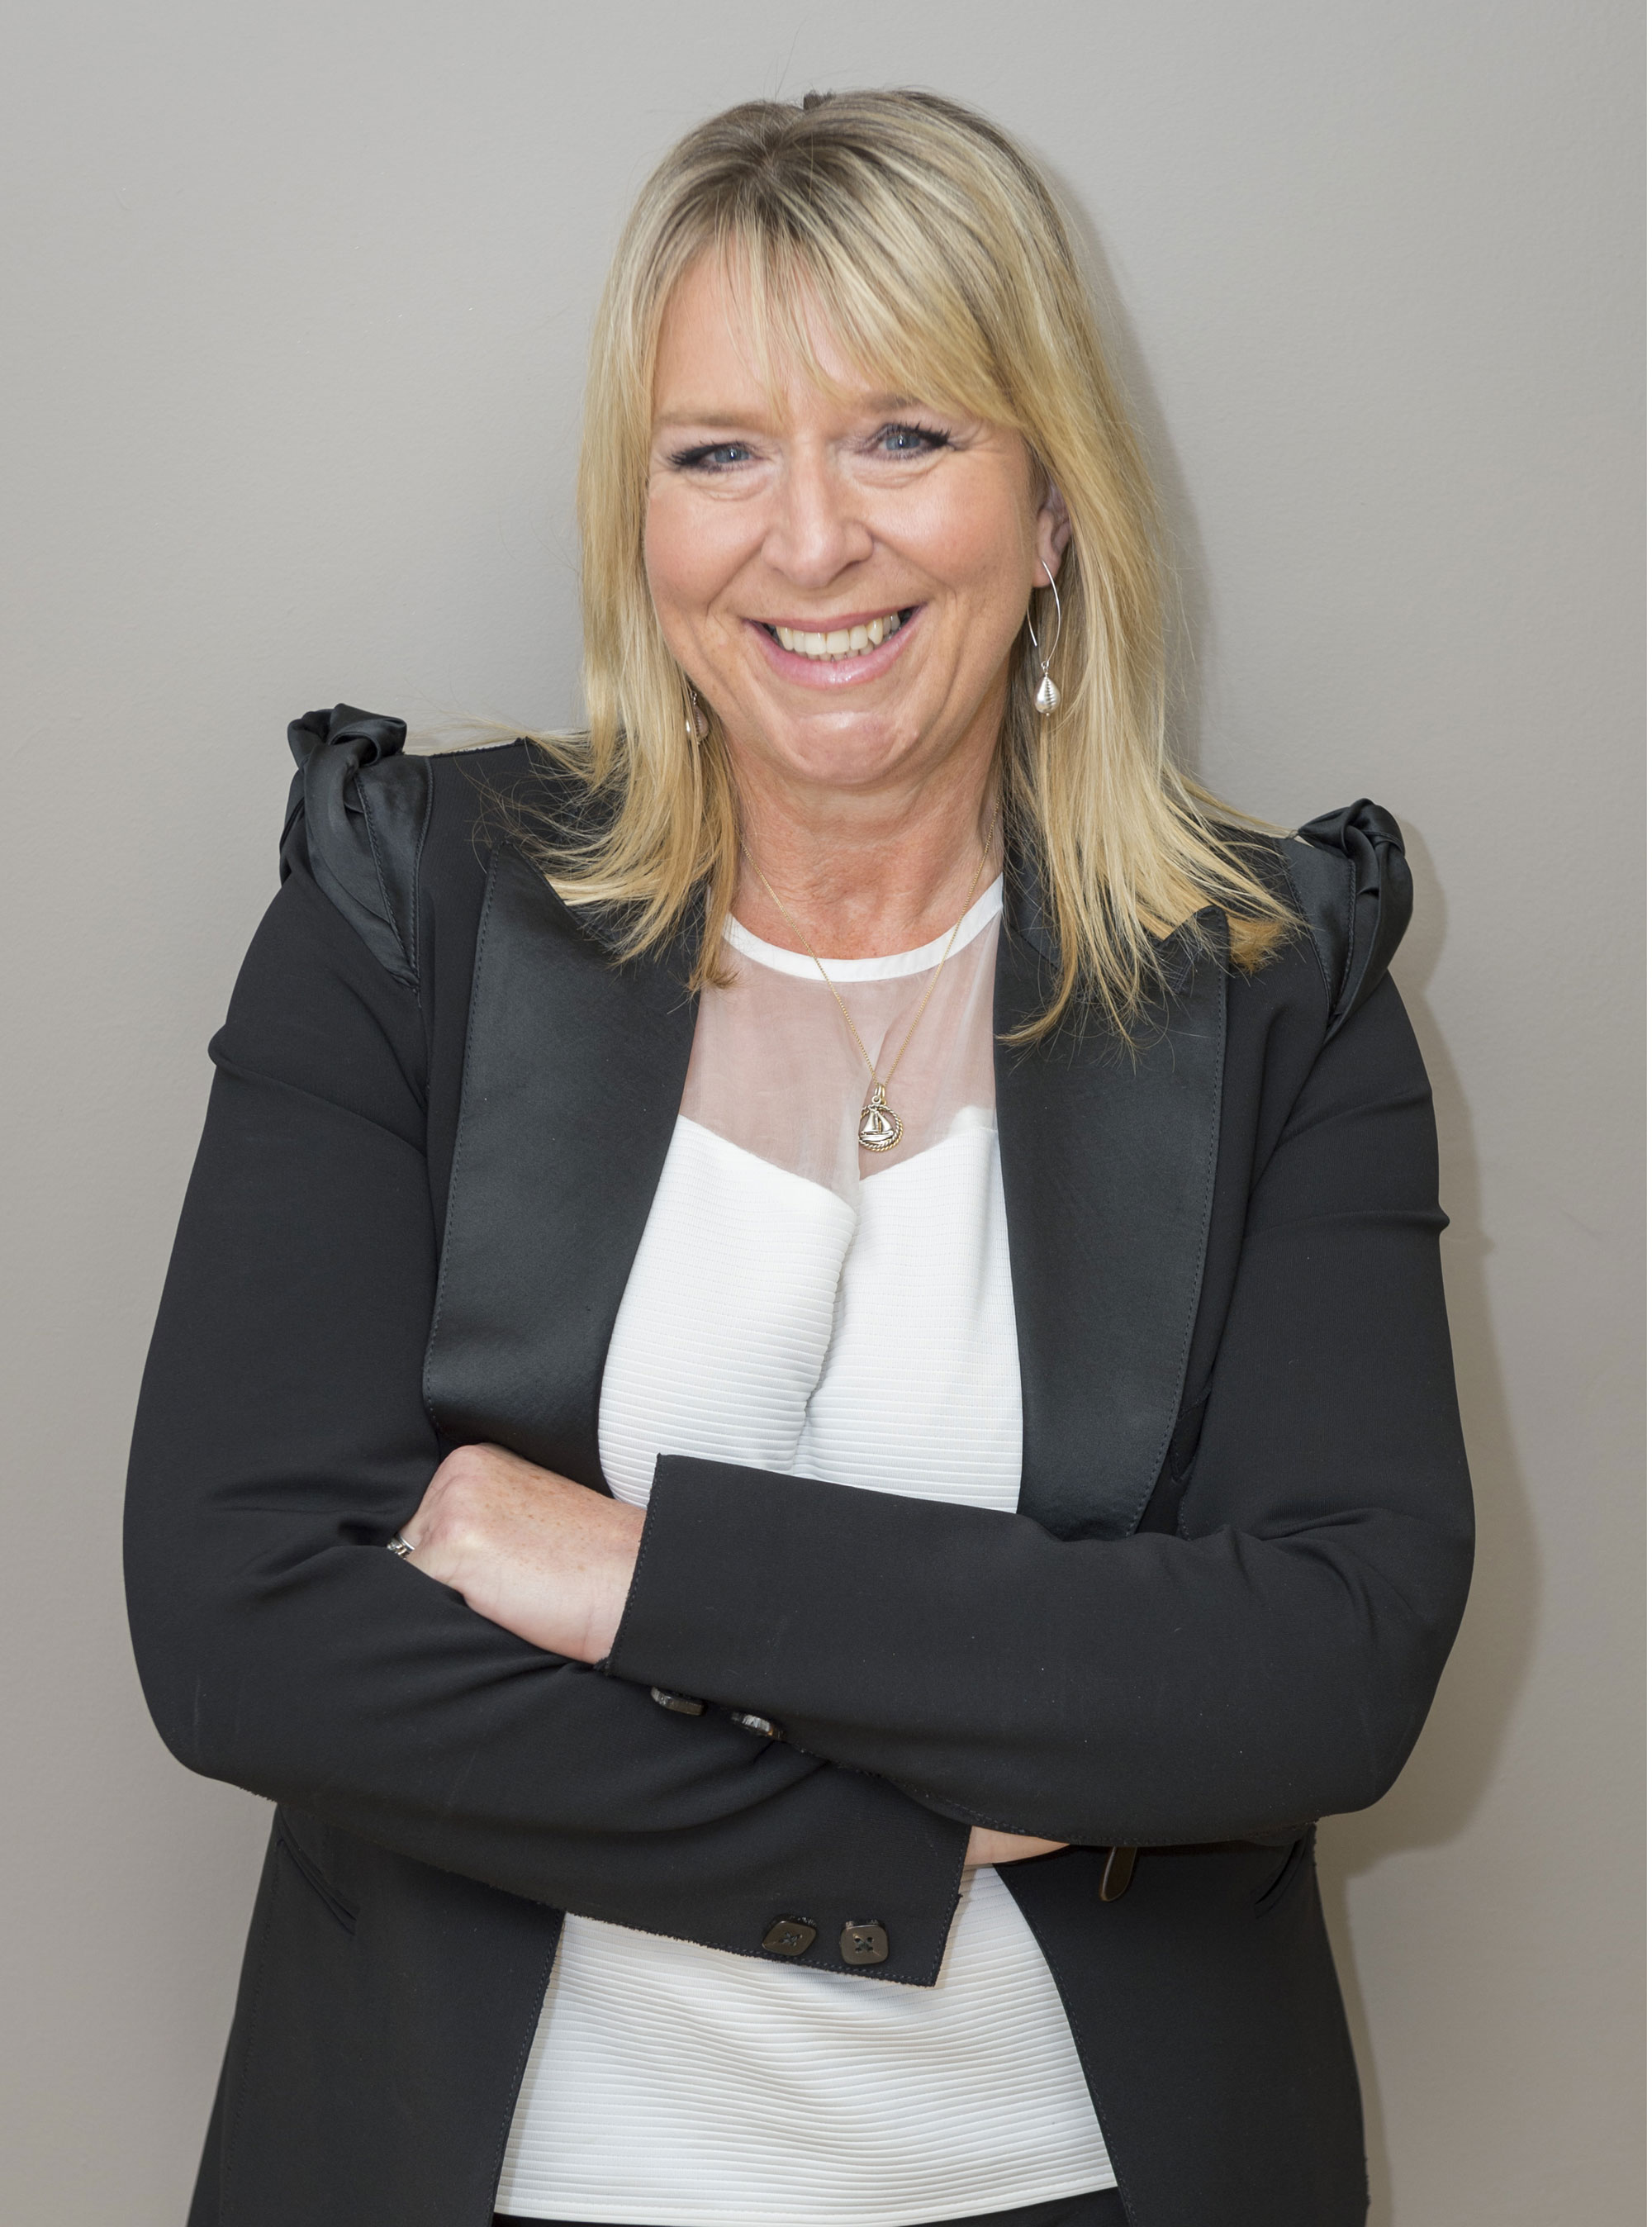 Fern Britton Returning To This Morning Woman And Home